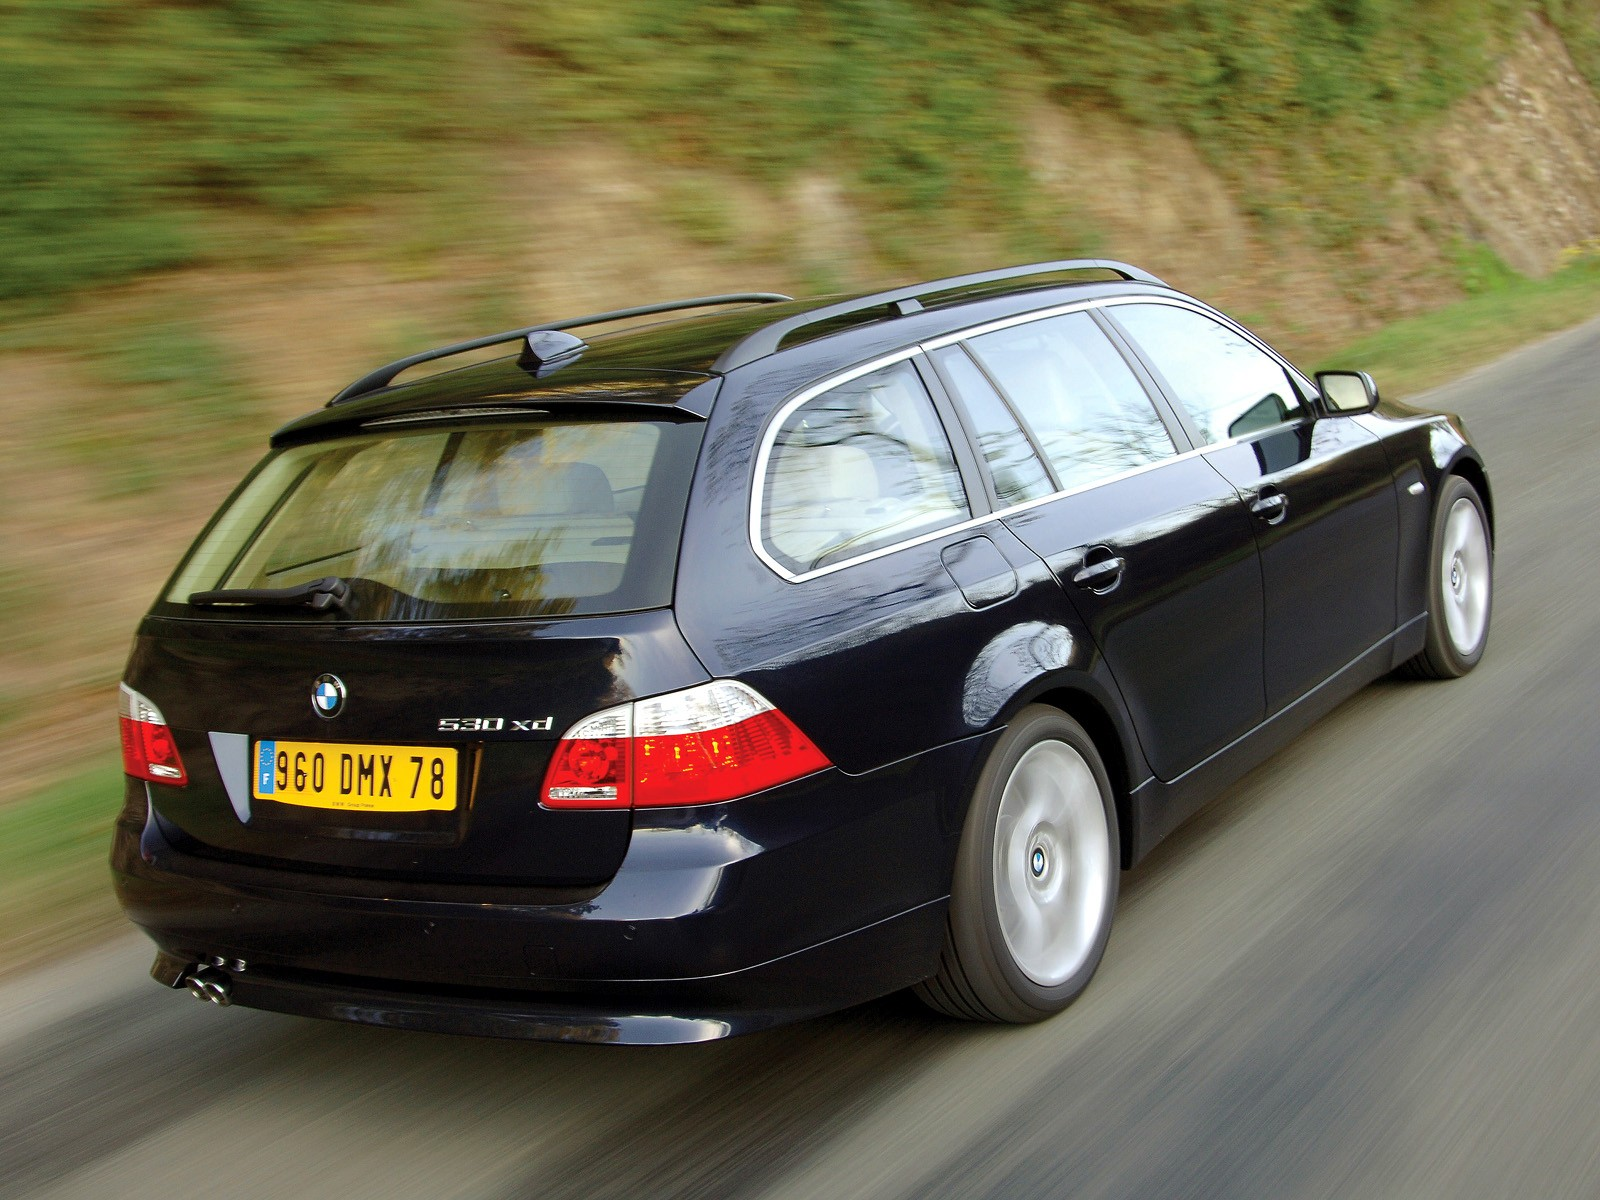 BMW 5 series 530xd 2007 photo - 1